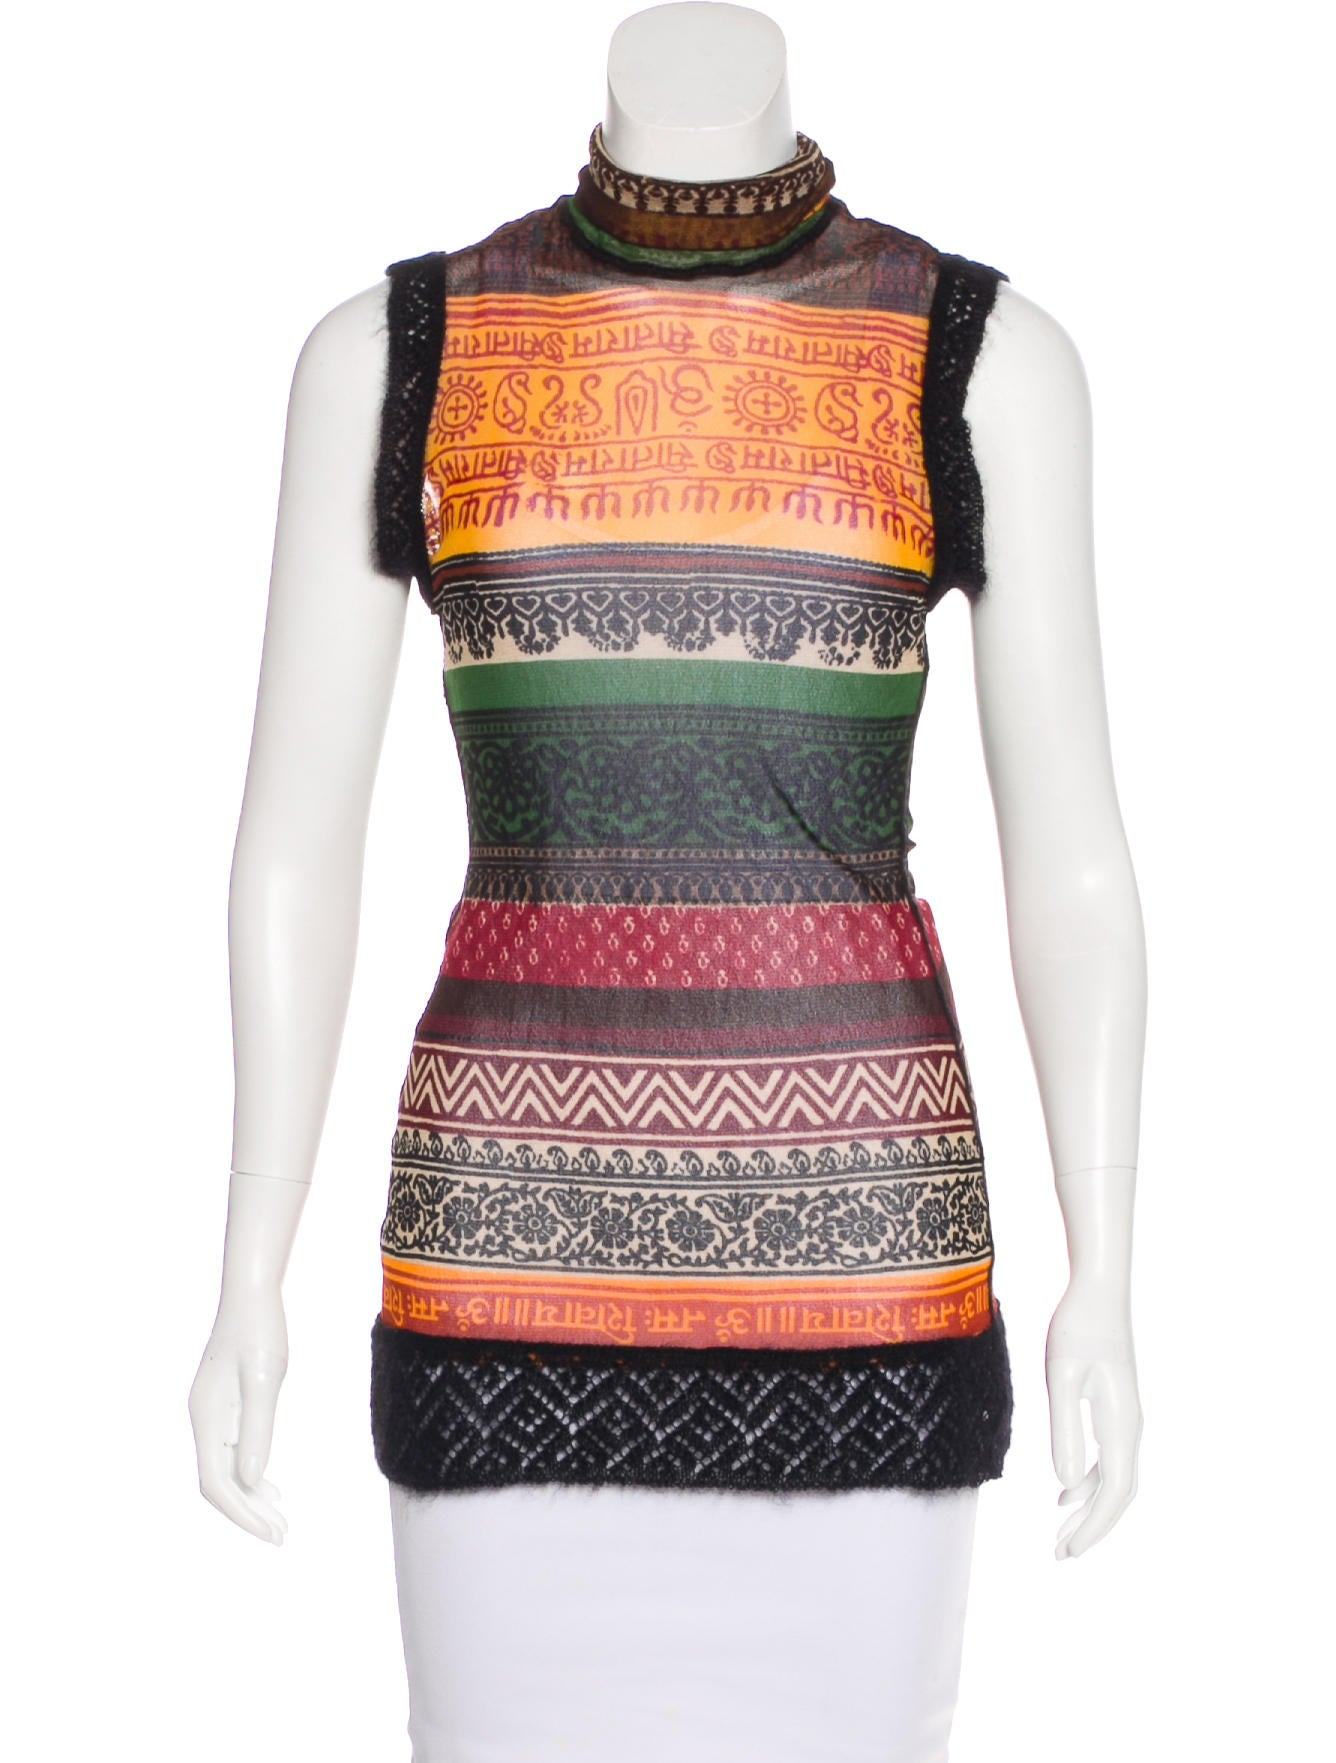 Jean paul gaultier classique printed mesh top clothing for Jean paul gaultier clothing